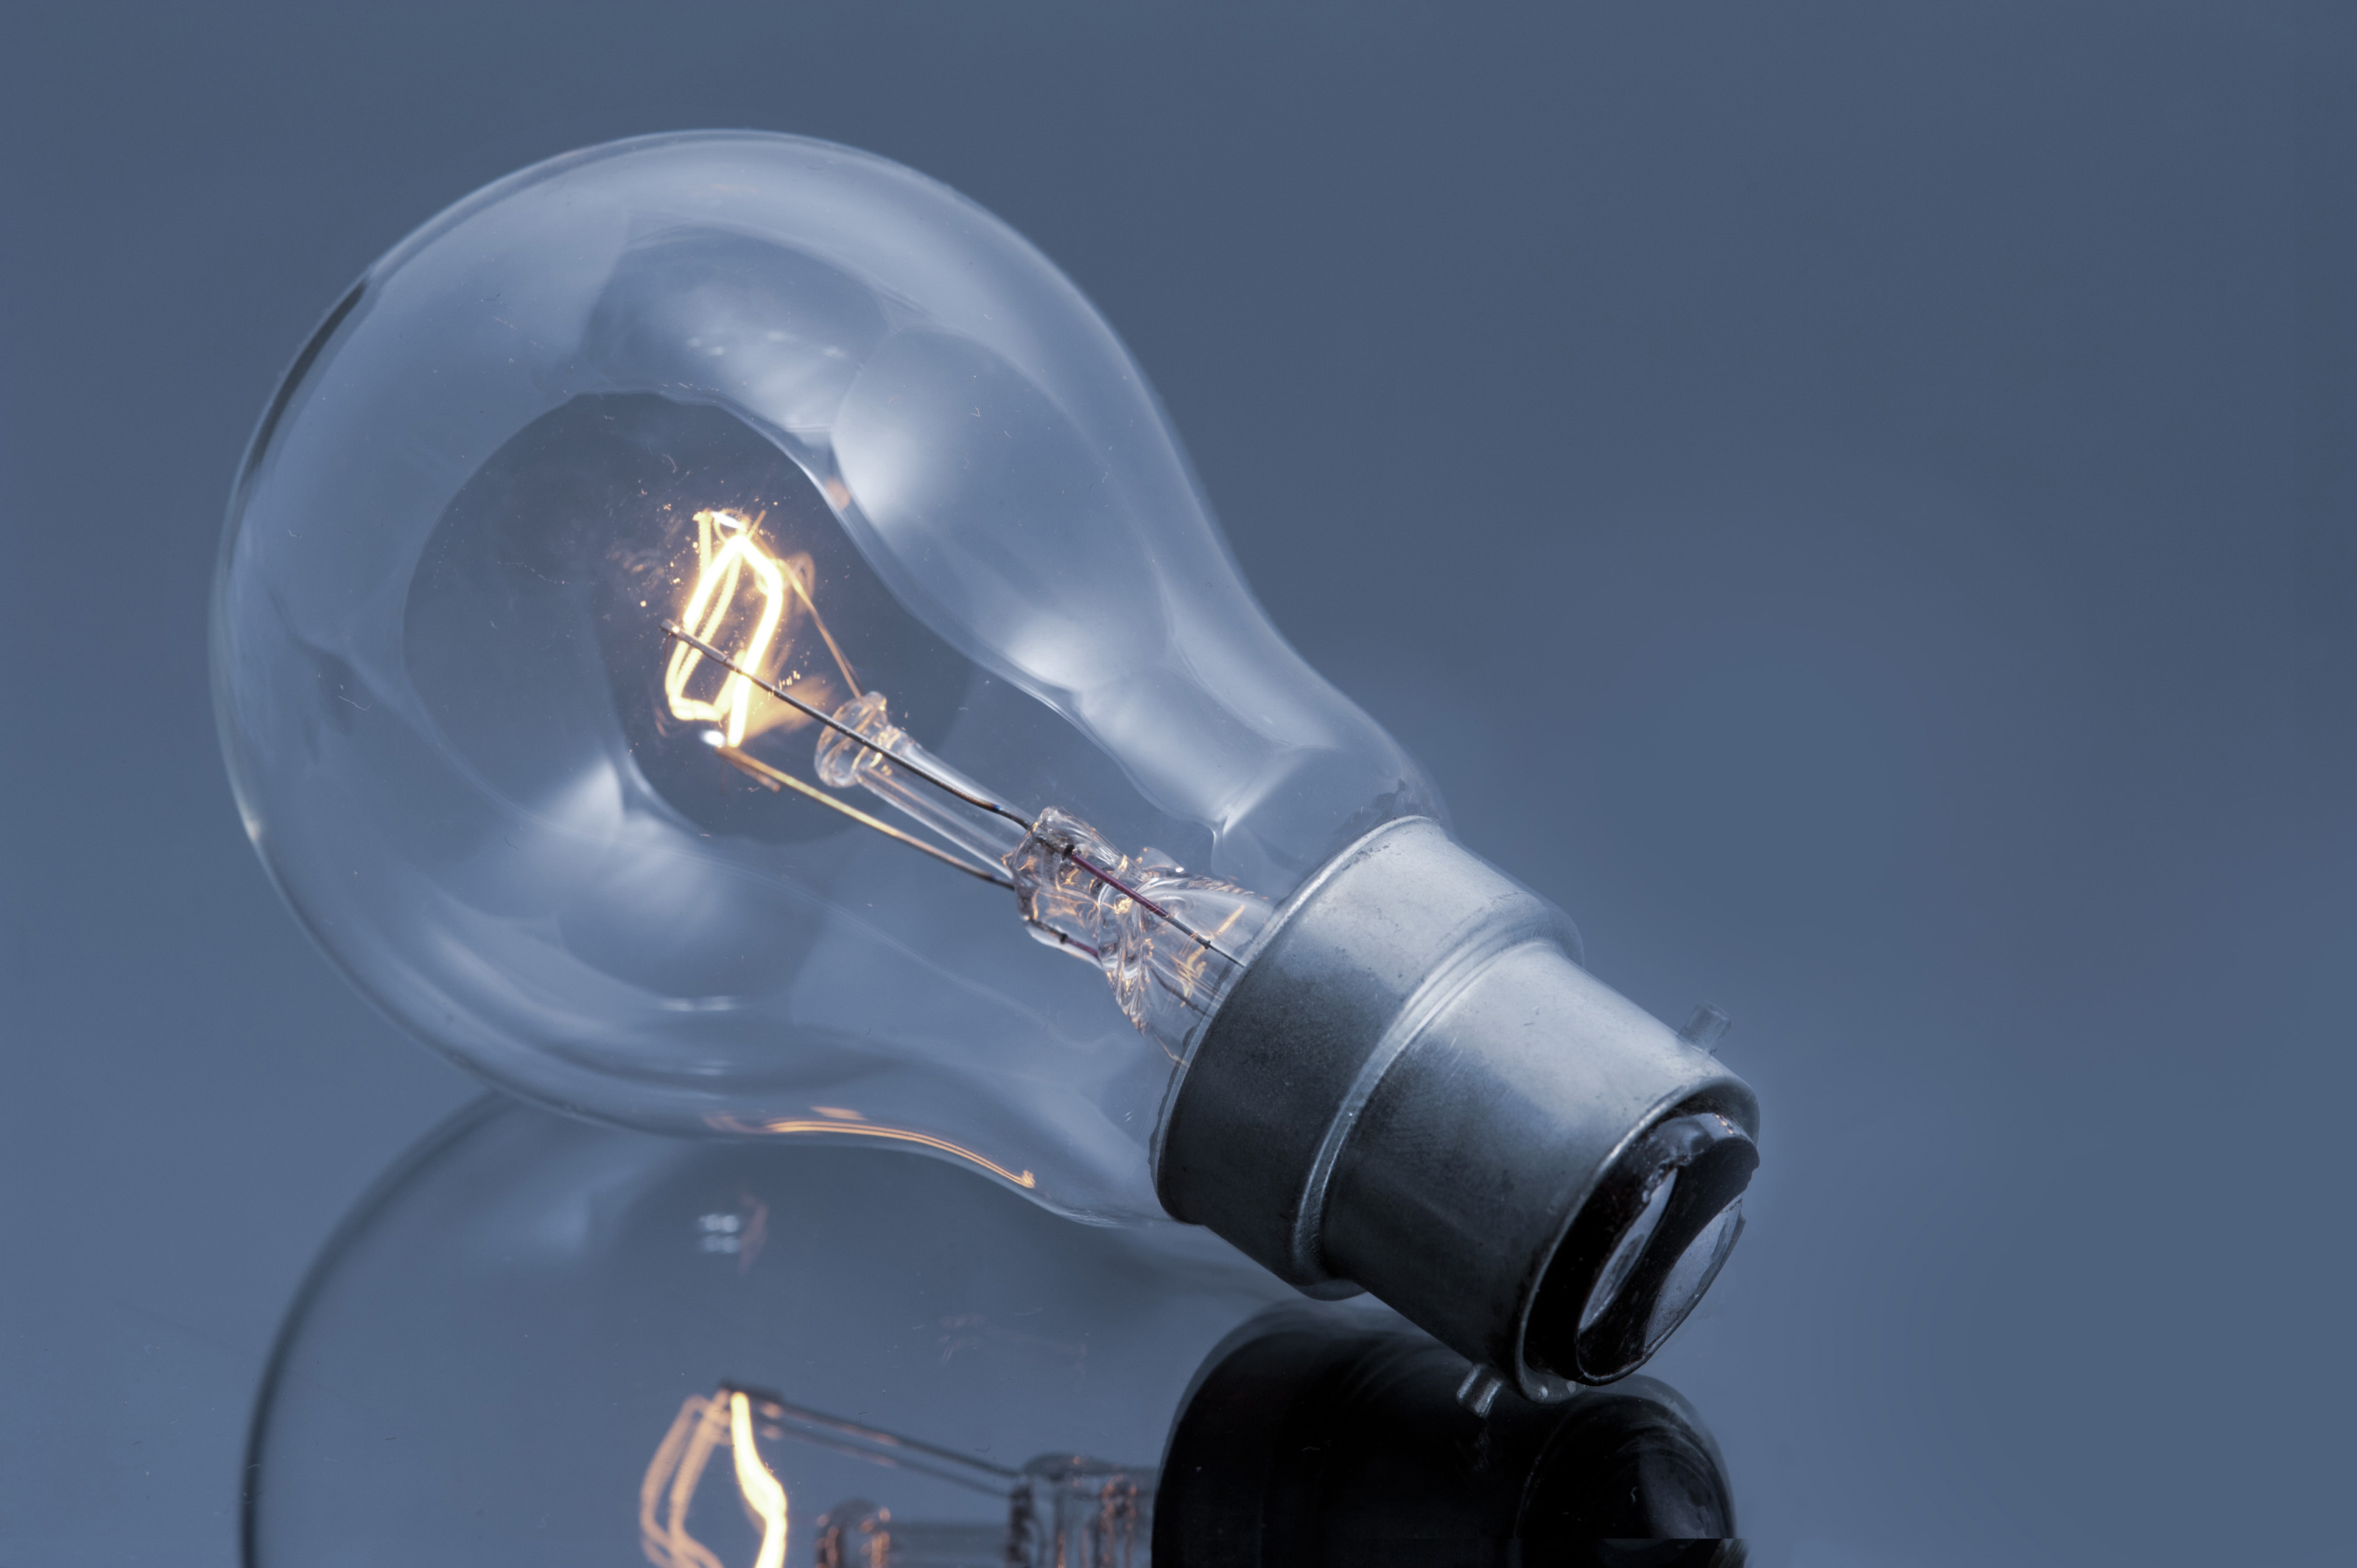 free stock photo 10757 glowing light bulb on glossy gray